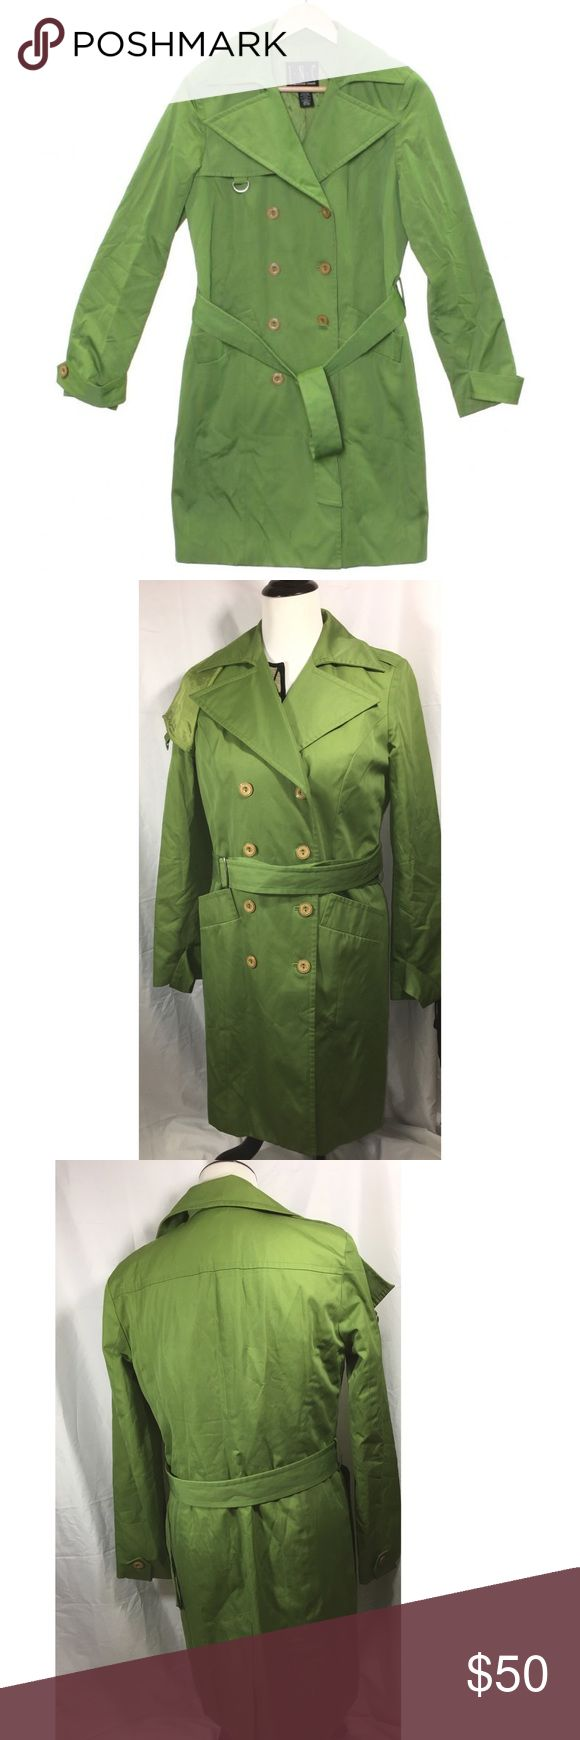 Inc green trench/rain coat Lightweight trench coat, length 36, bust 19, belted INC International Concepts Jackets & Coats Trench Coats